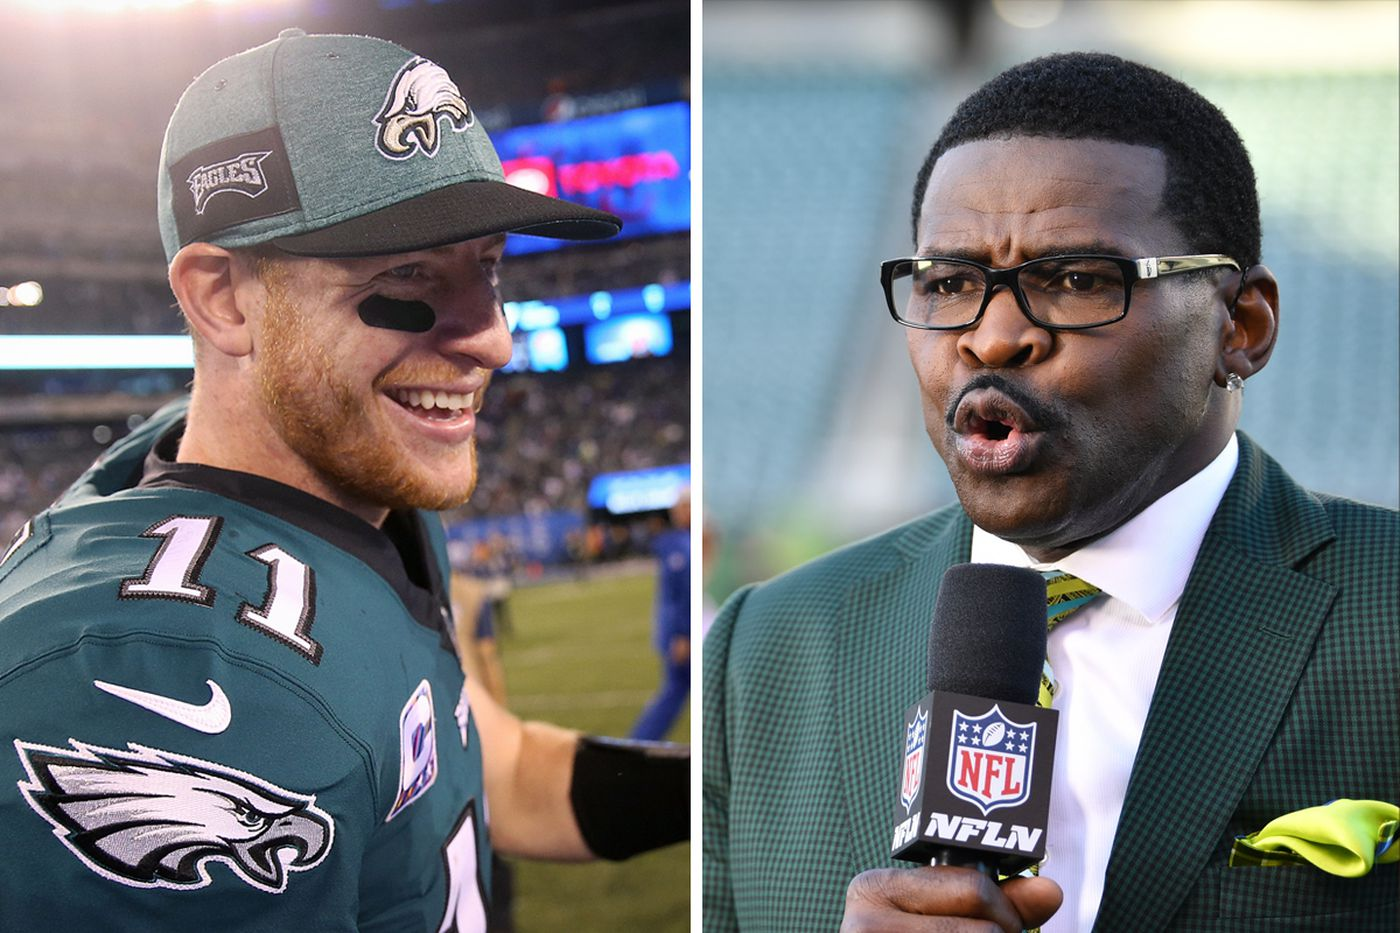 Panthers' Reid confronts Eagles' Jenkins over protests, coalition